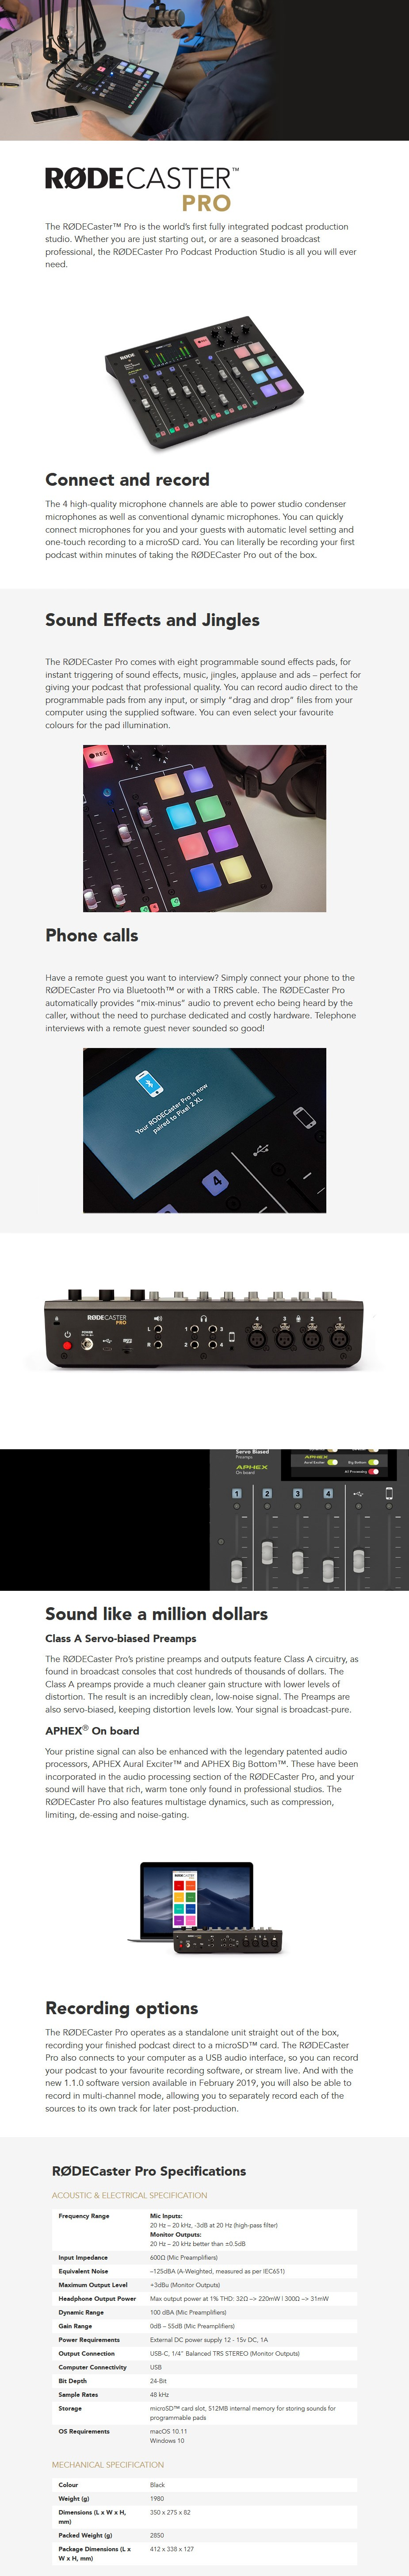 RODE RODECaster Pro Podcast Production Console - Desktop Overview 1